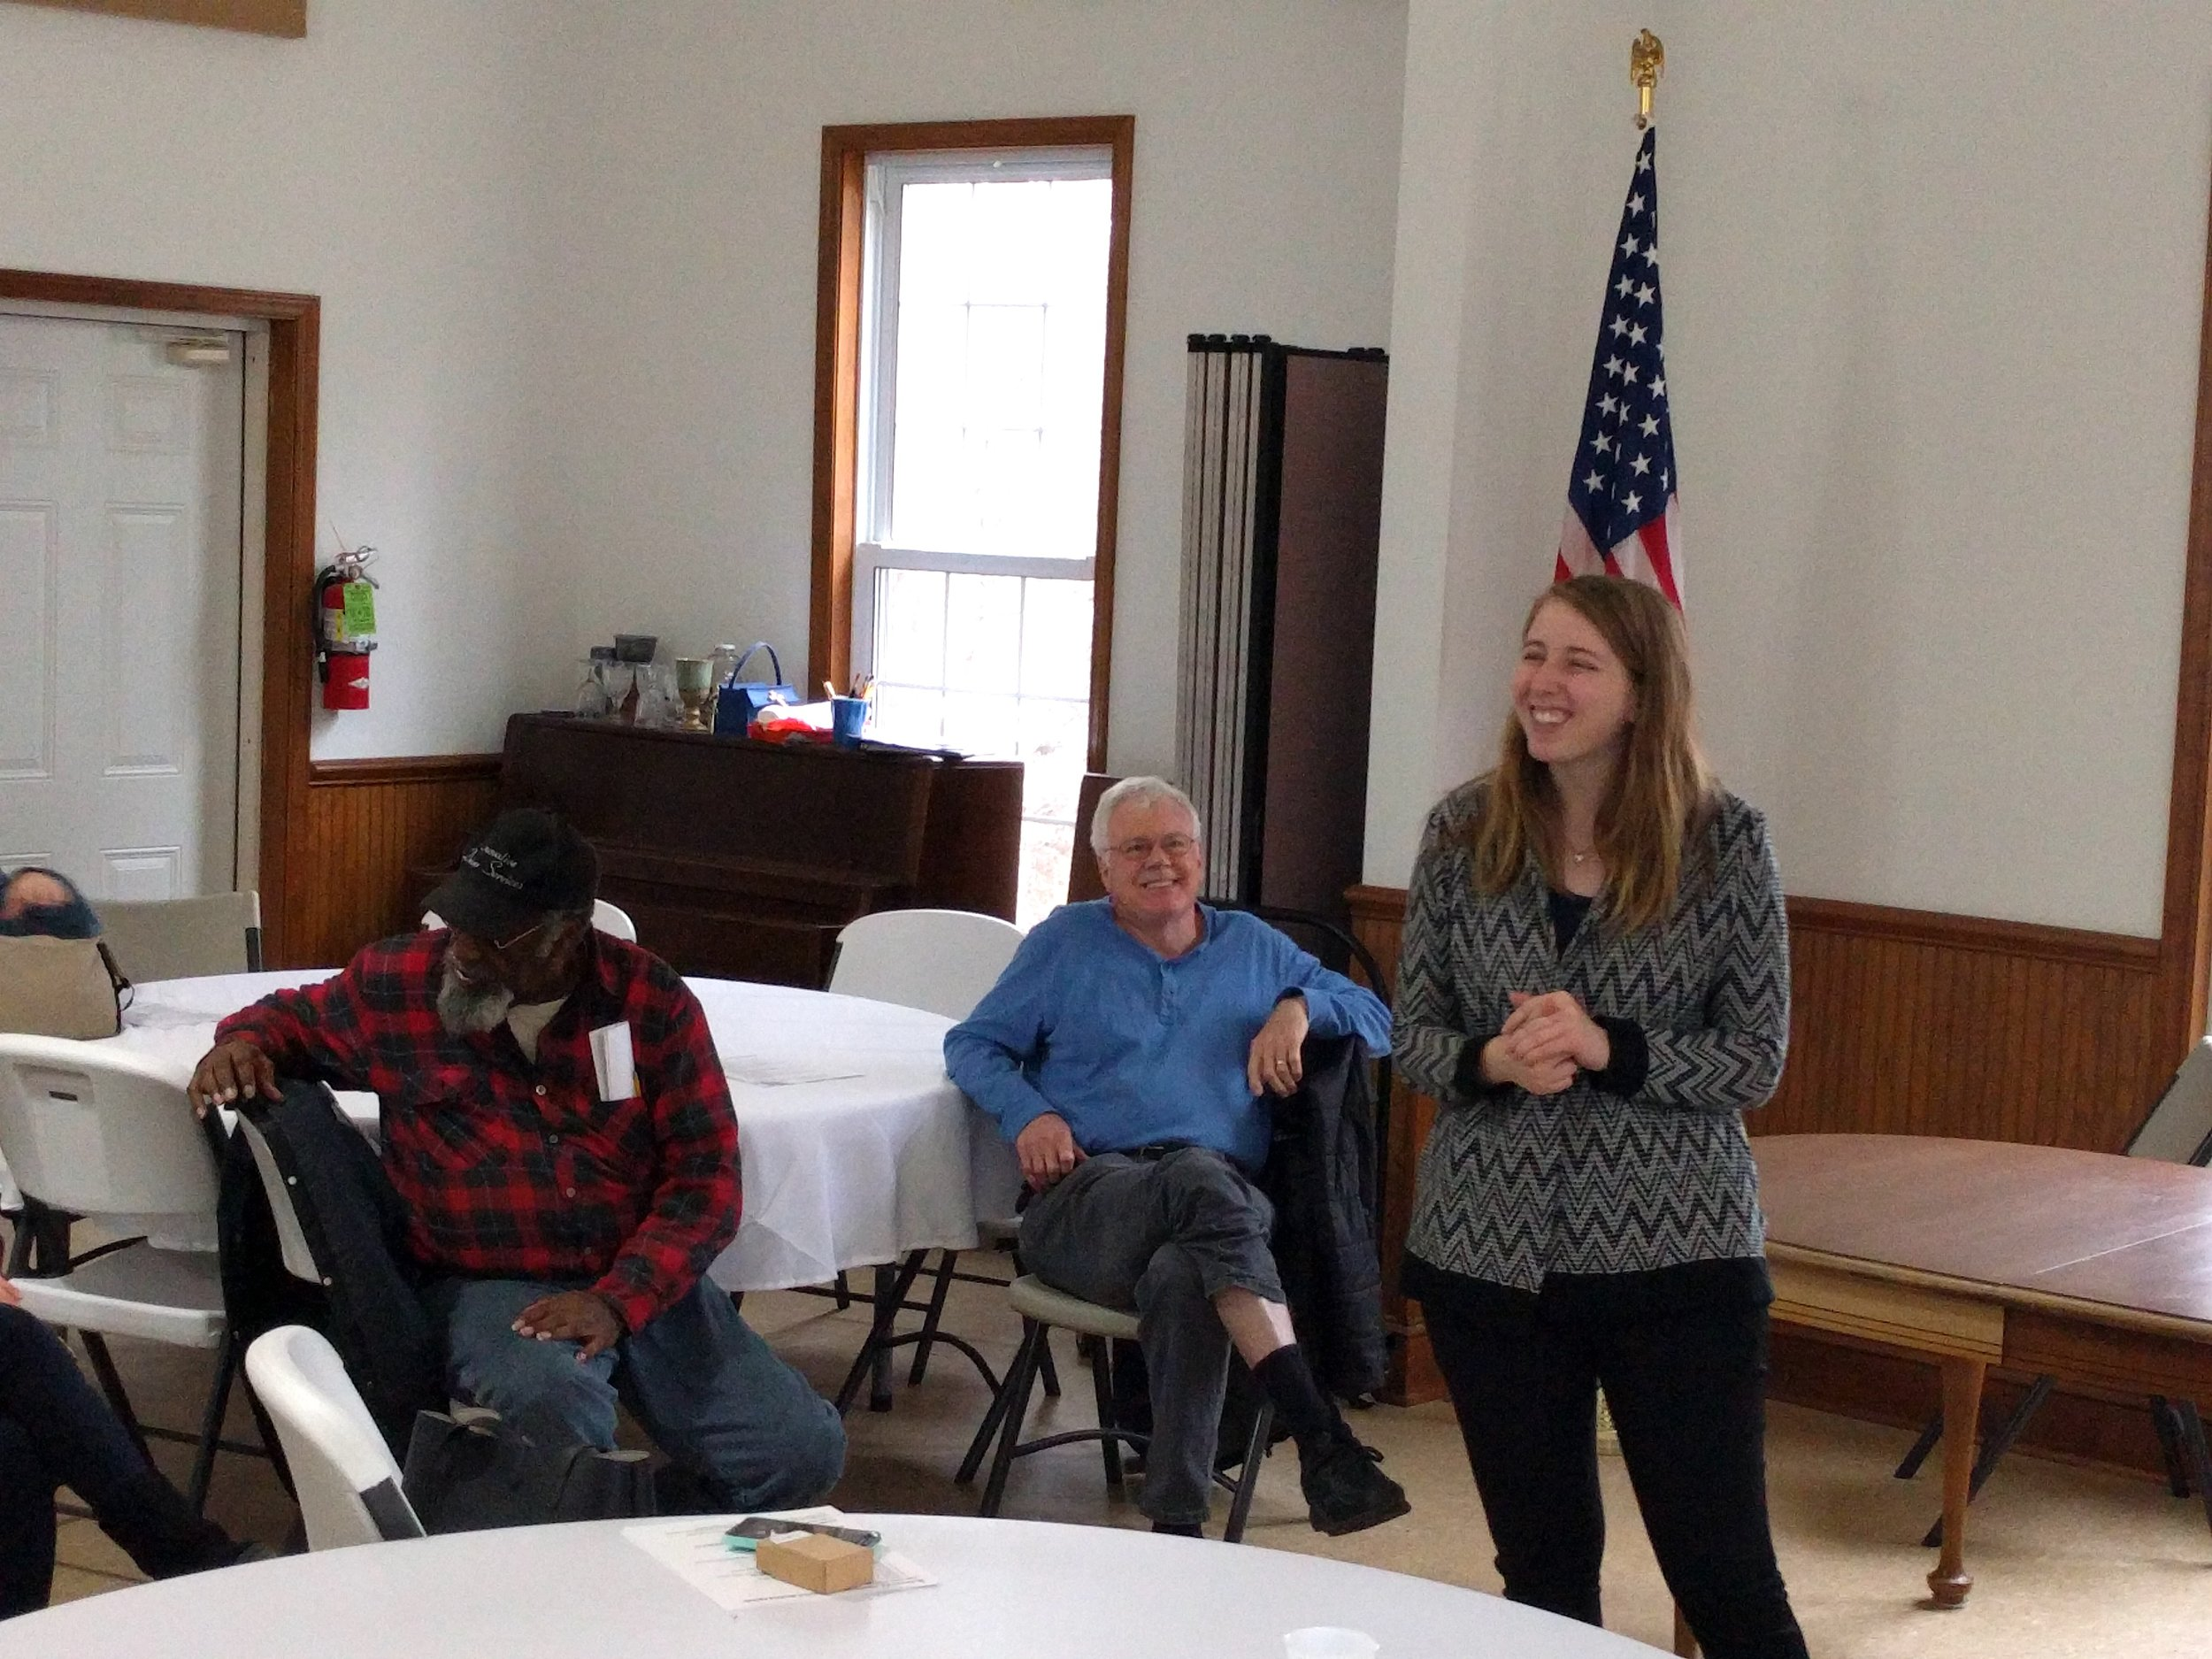 Caption: Kristen Powers speaks to group at a local event.